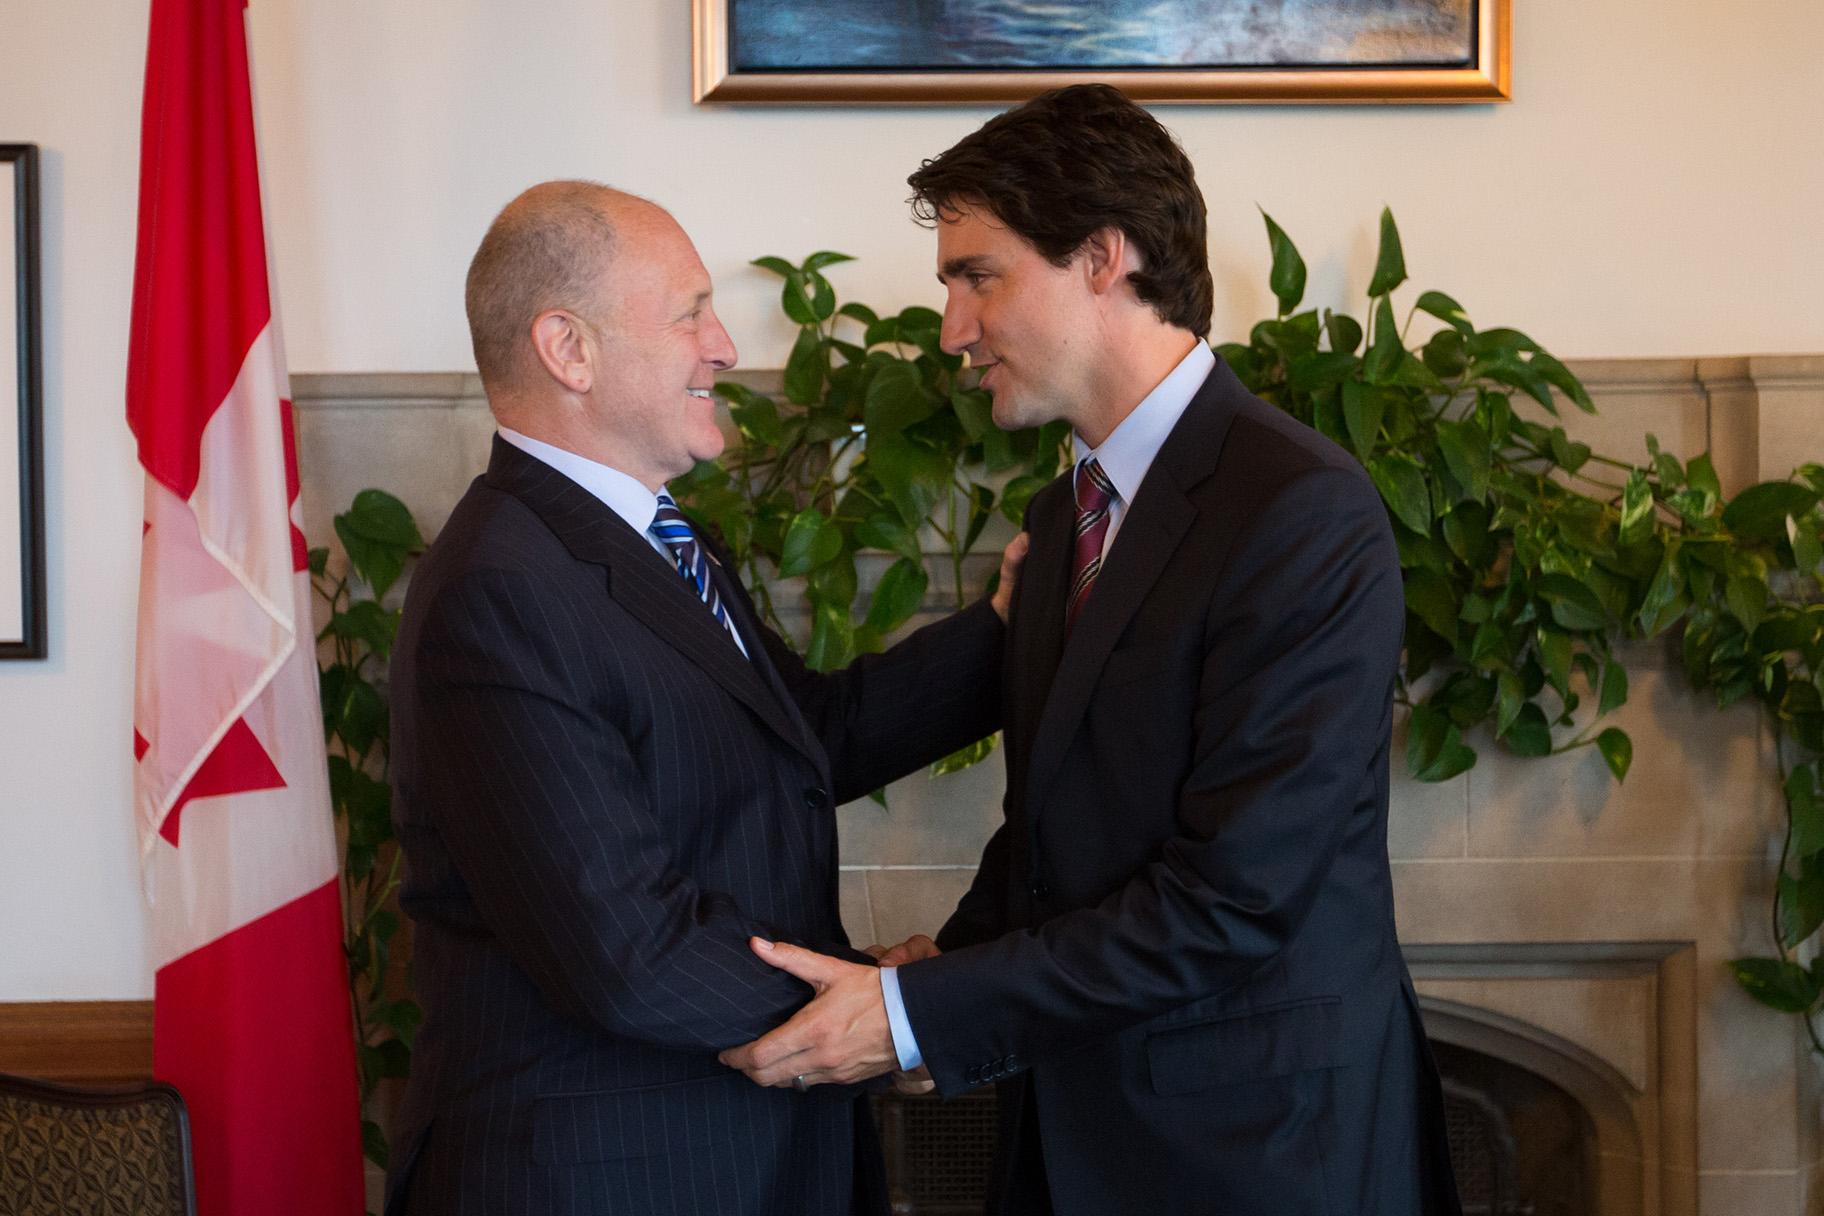 U.S. Ambassador to Canada Bruce Heyman, left, and Canadian Prime Minister Justin Trudeau. (Courtesy Uncharted, LLC)